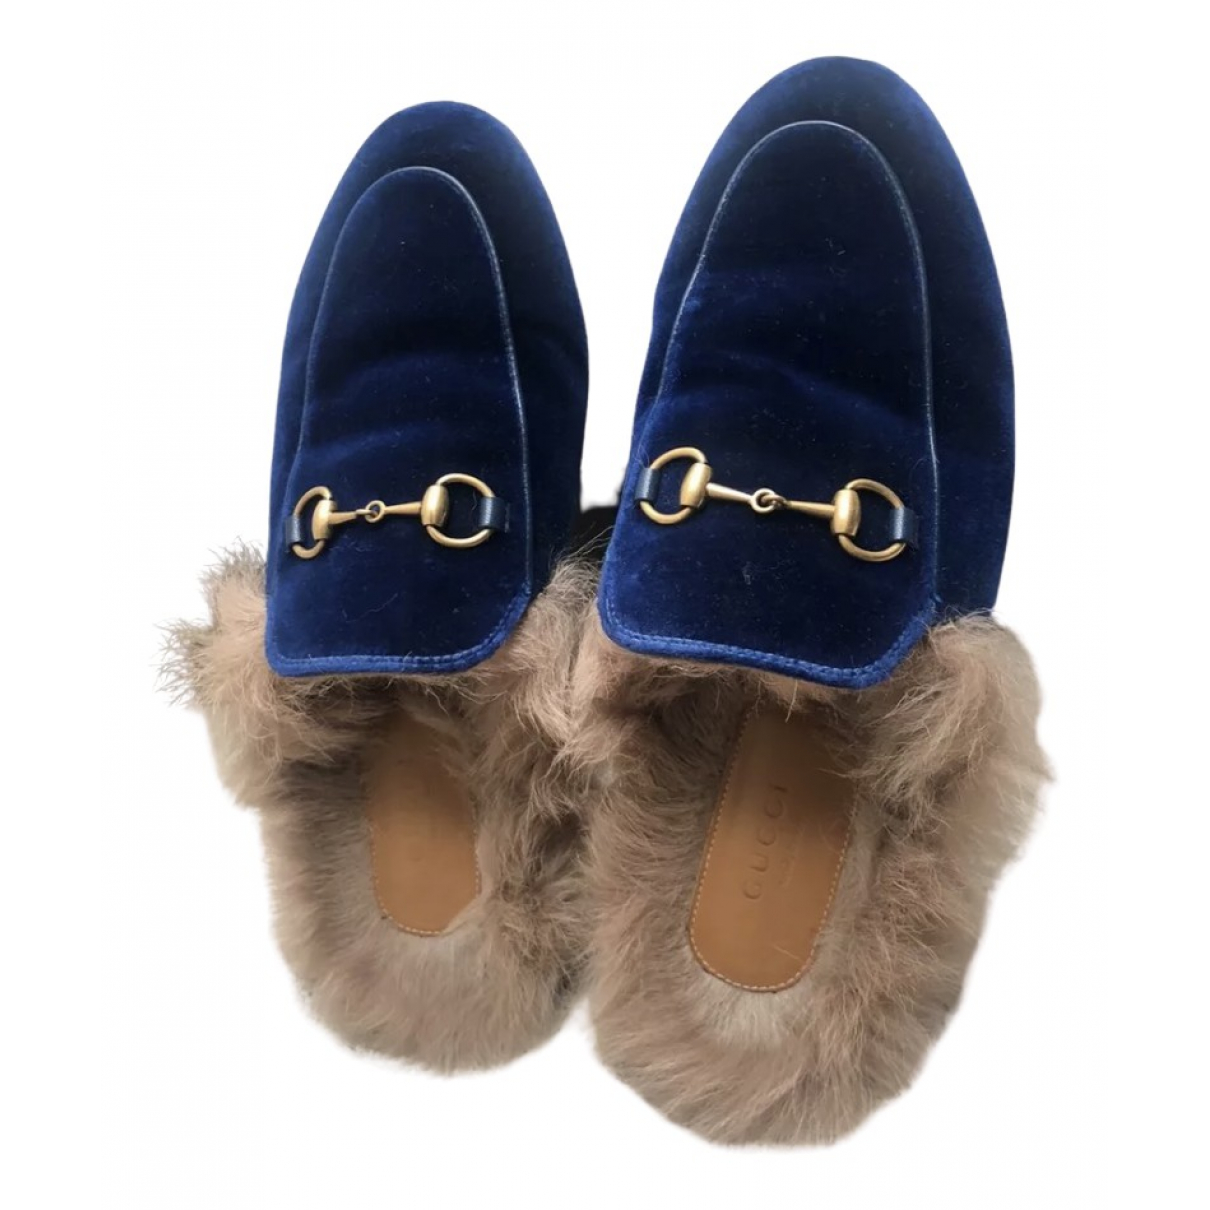 Gucci Princetown Blue Velvet Flats for Women 37 EU